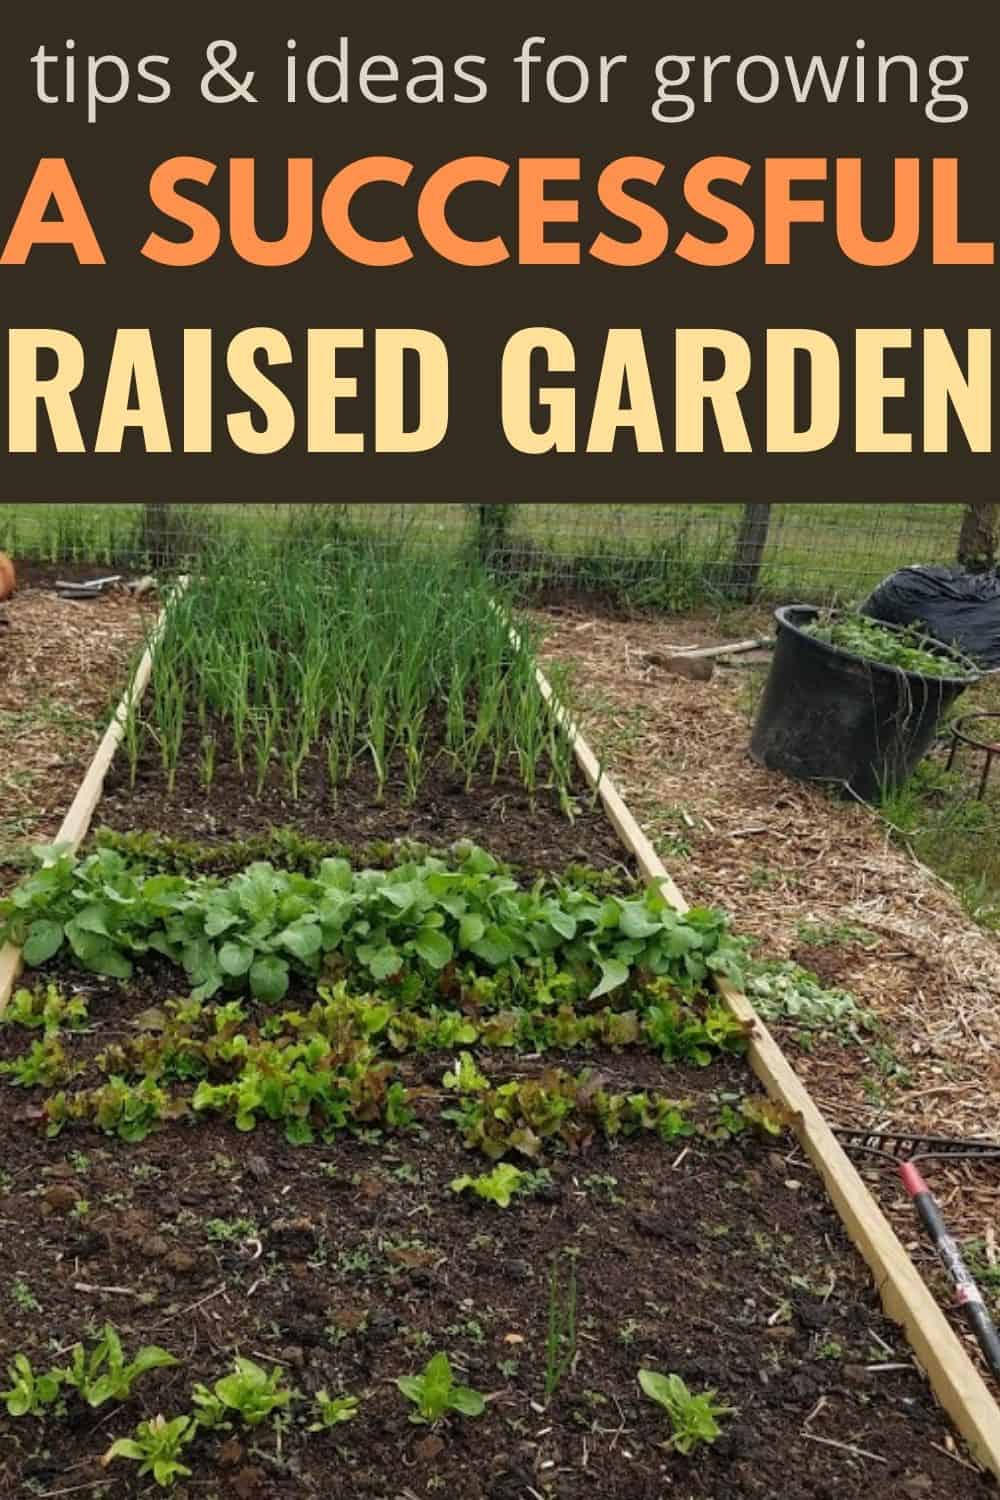 Vegetables growing in a raised bed garden